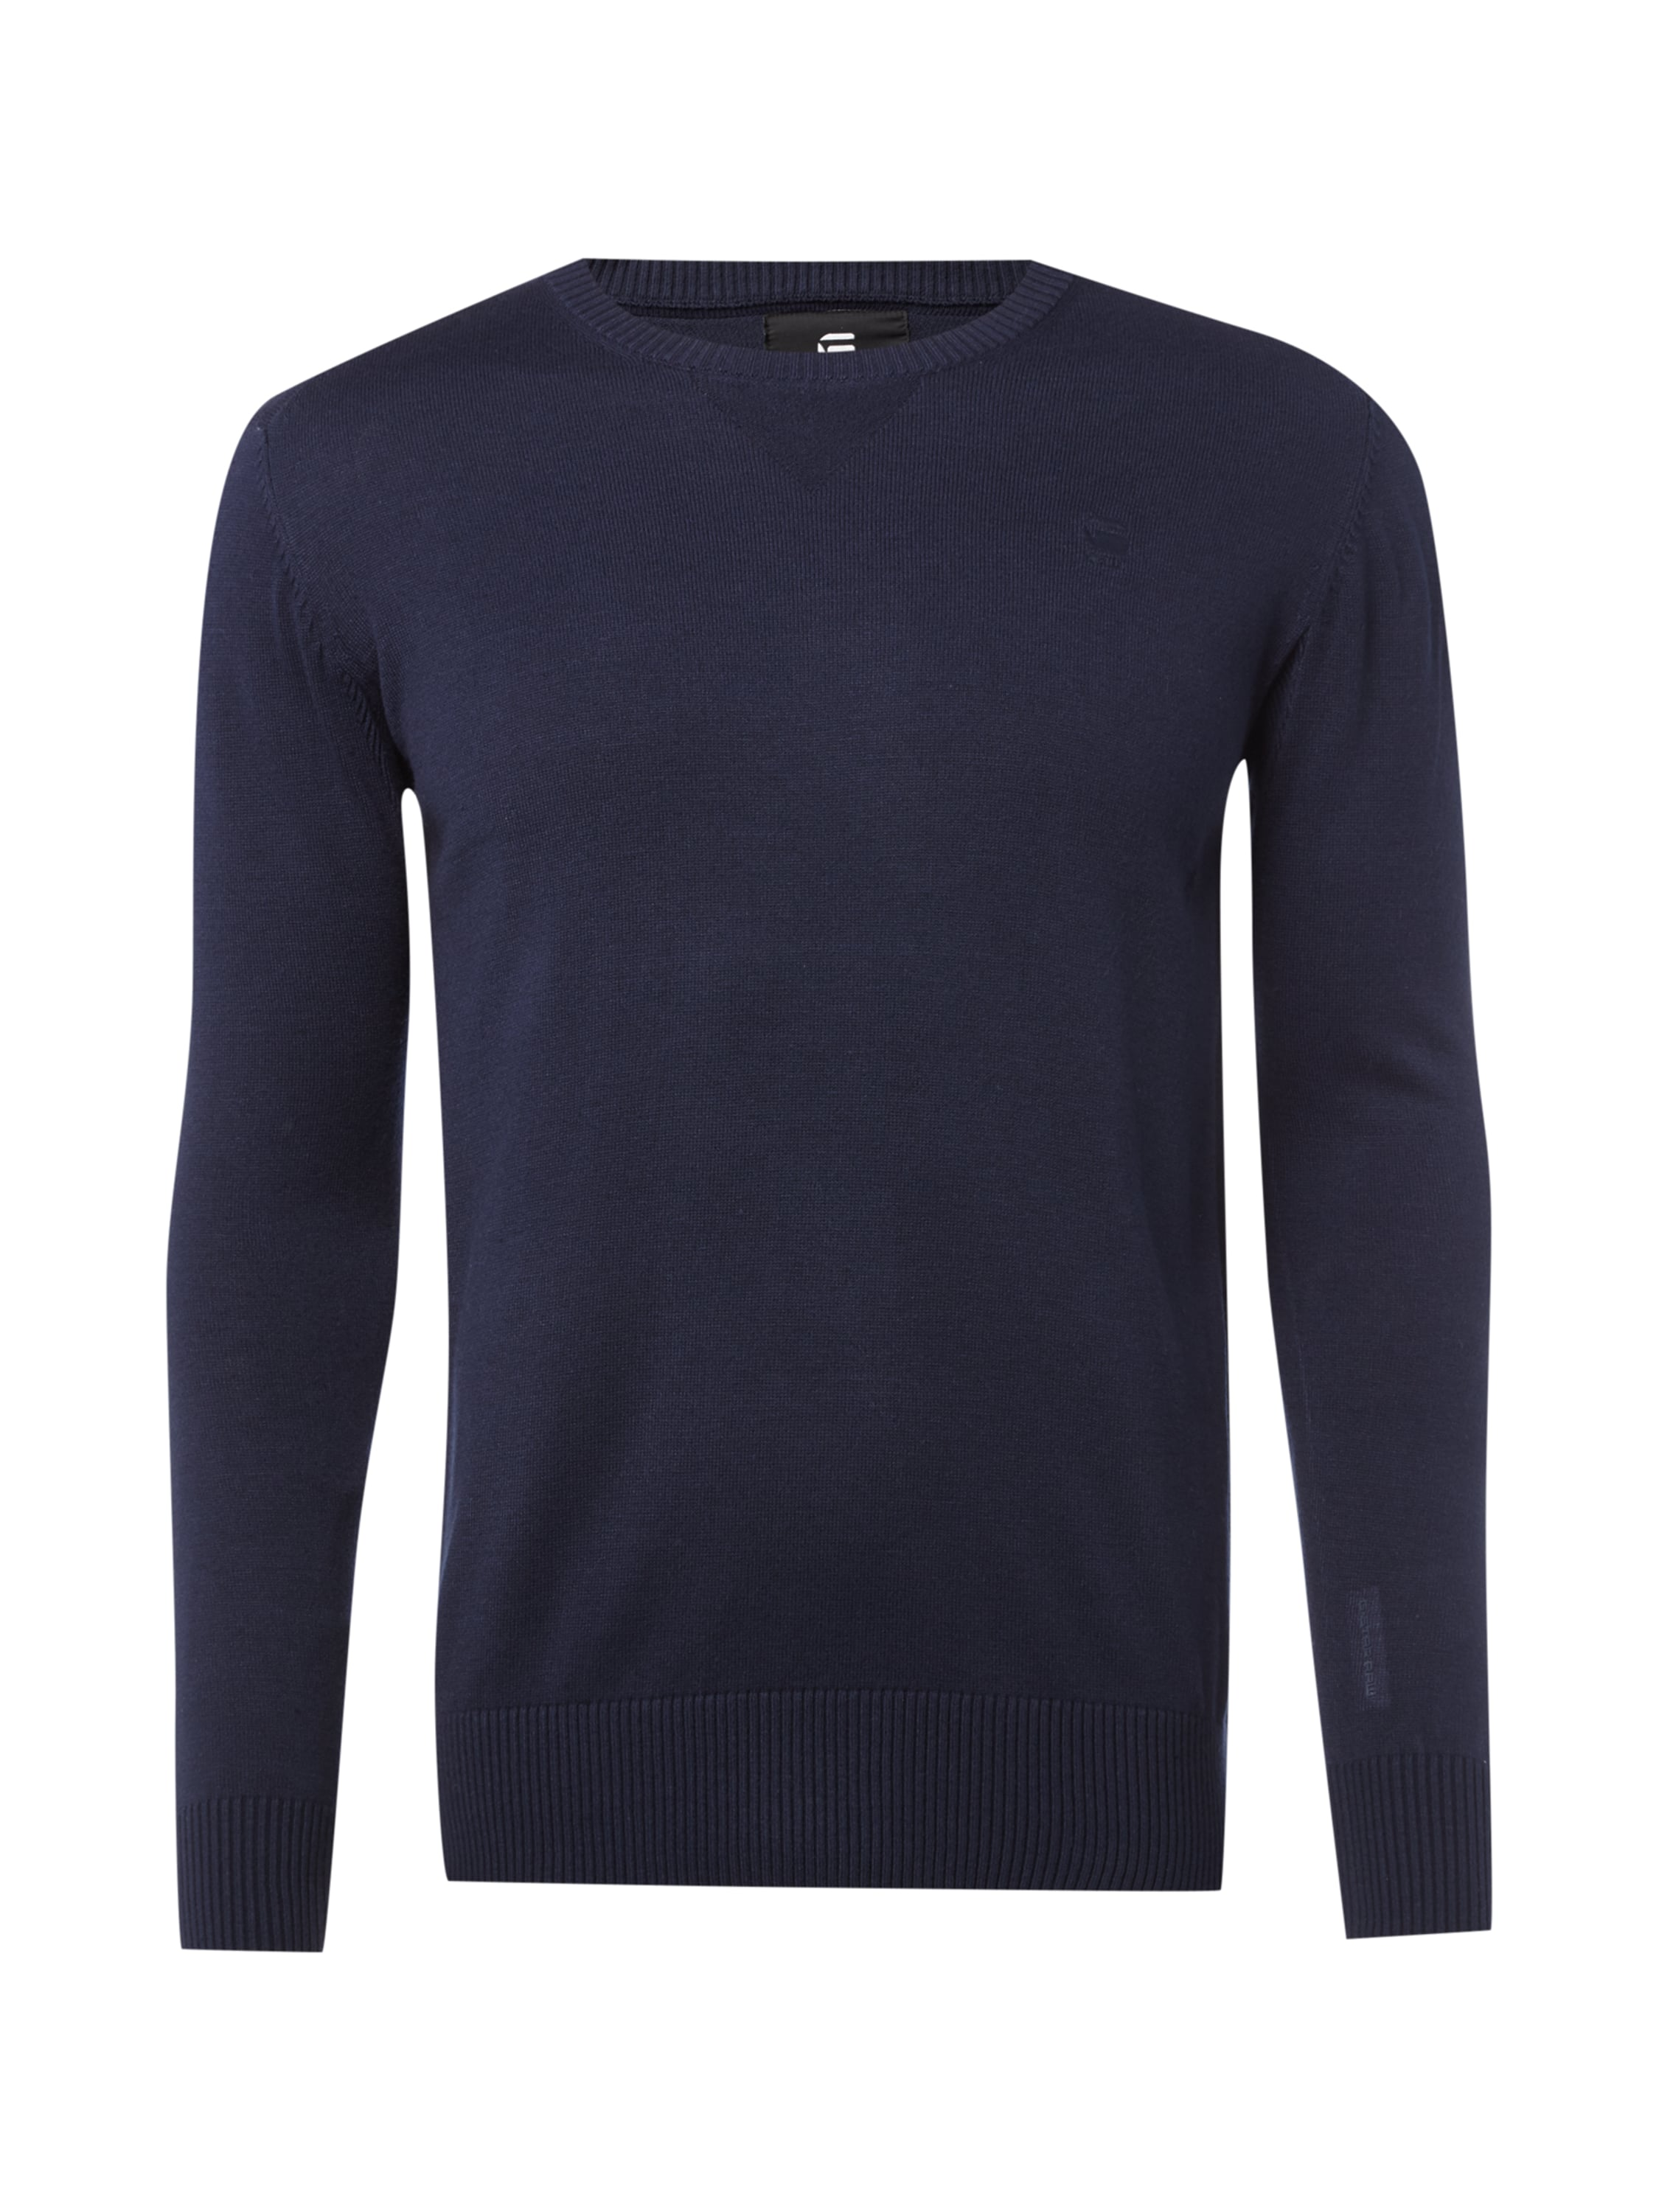 g star raw pullover mit rundhalsausschnitt in blau t rkis online kaufen 9492019 p c at online. Black Bedroom Furniture Sets. Home Design Ideas